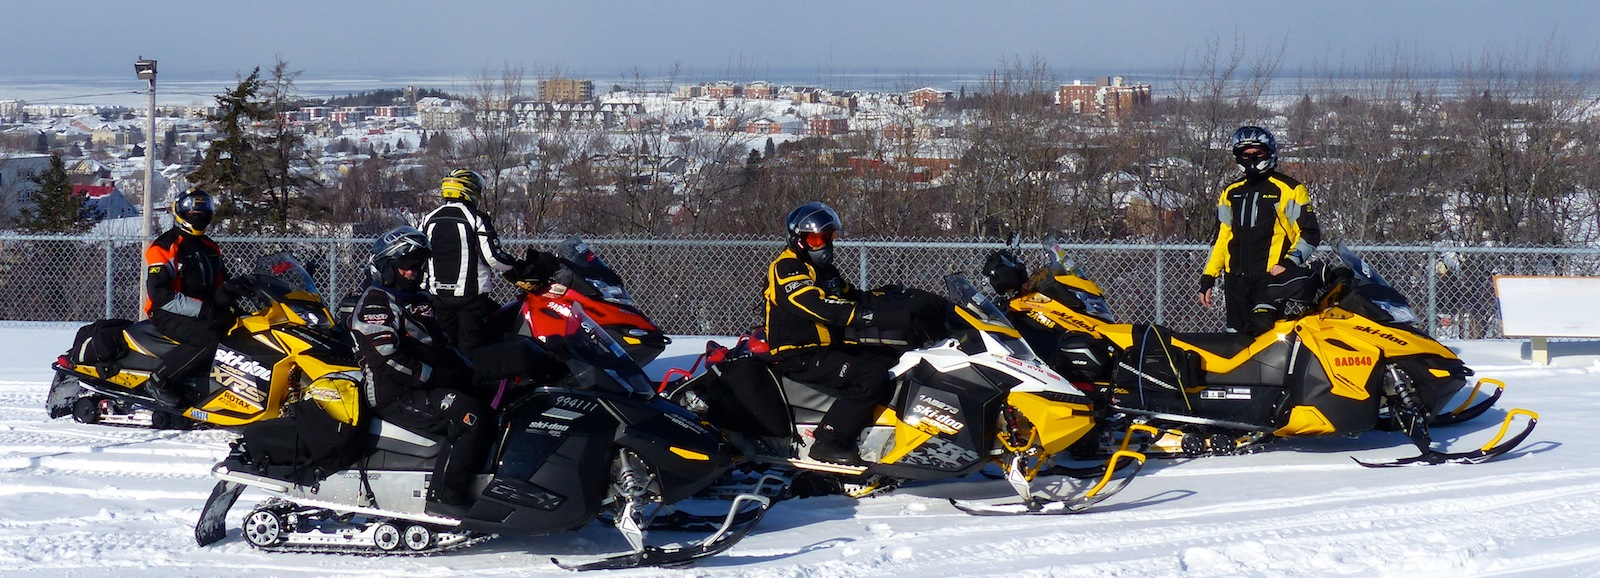 Snowmobile Bas Saint Laurent Quebec Tour